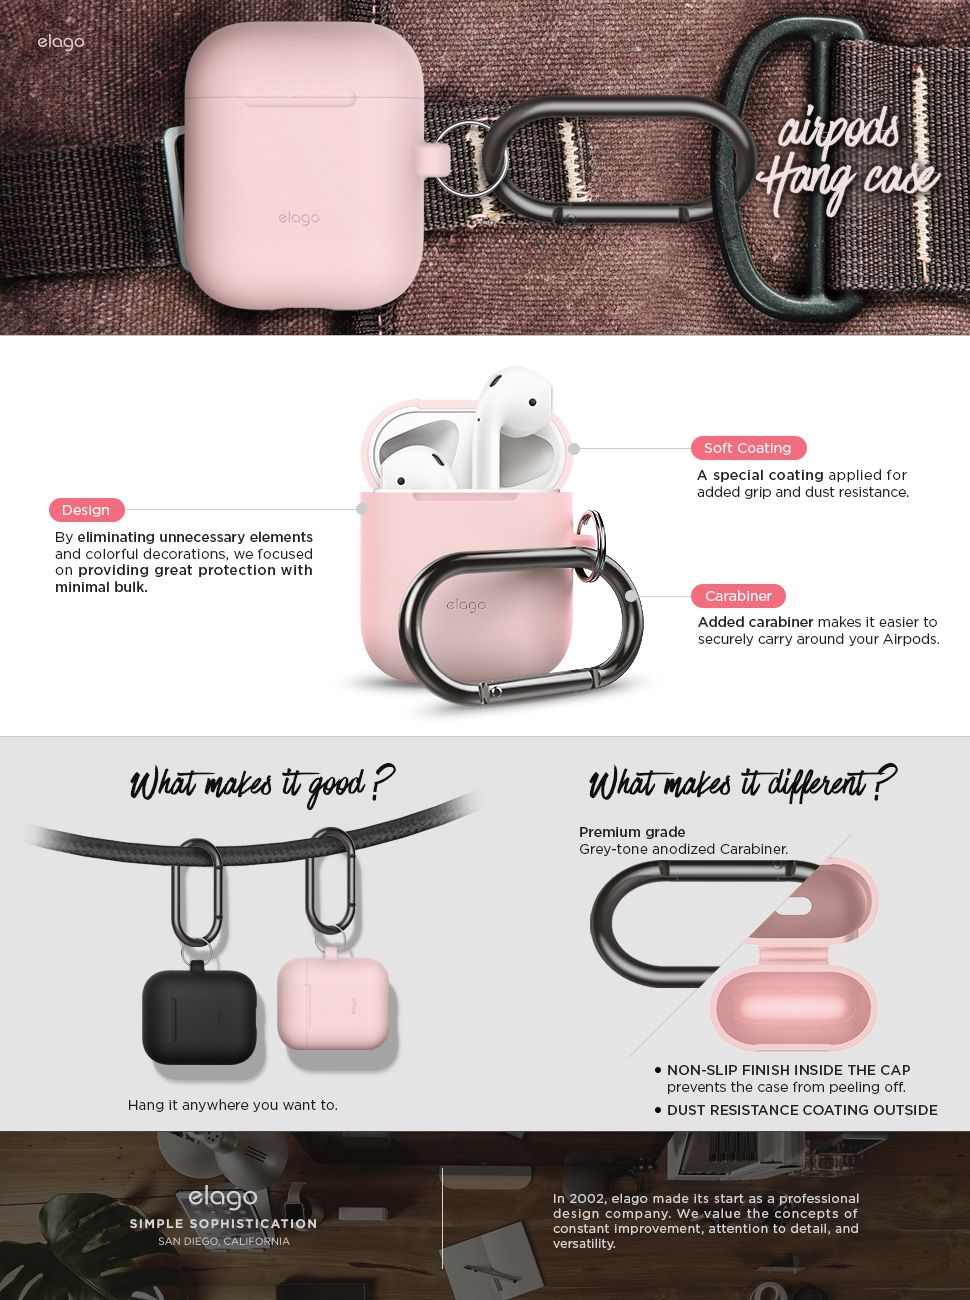 Amazon.com: elago AirPods Hang Case [Lovely Pink] - [Extra